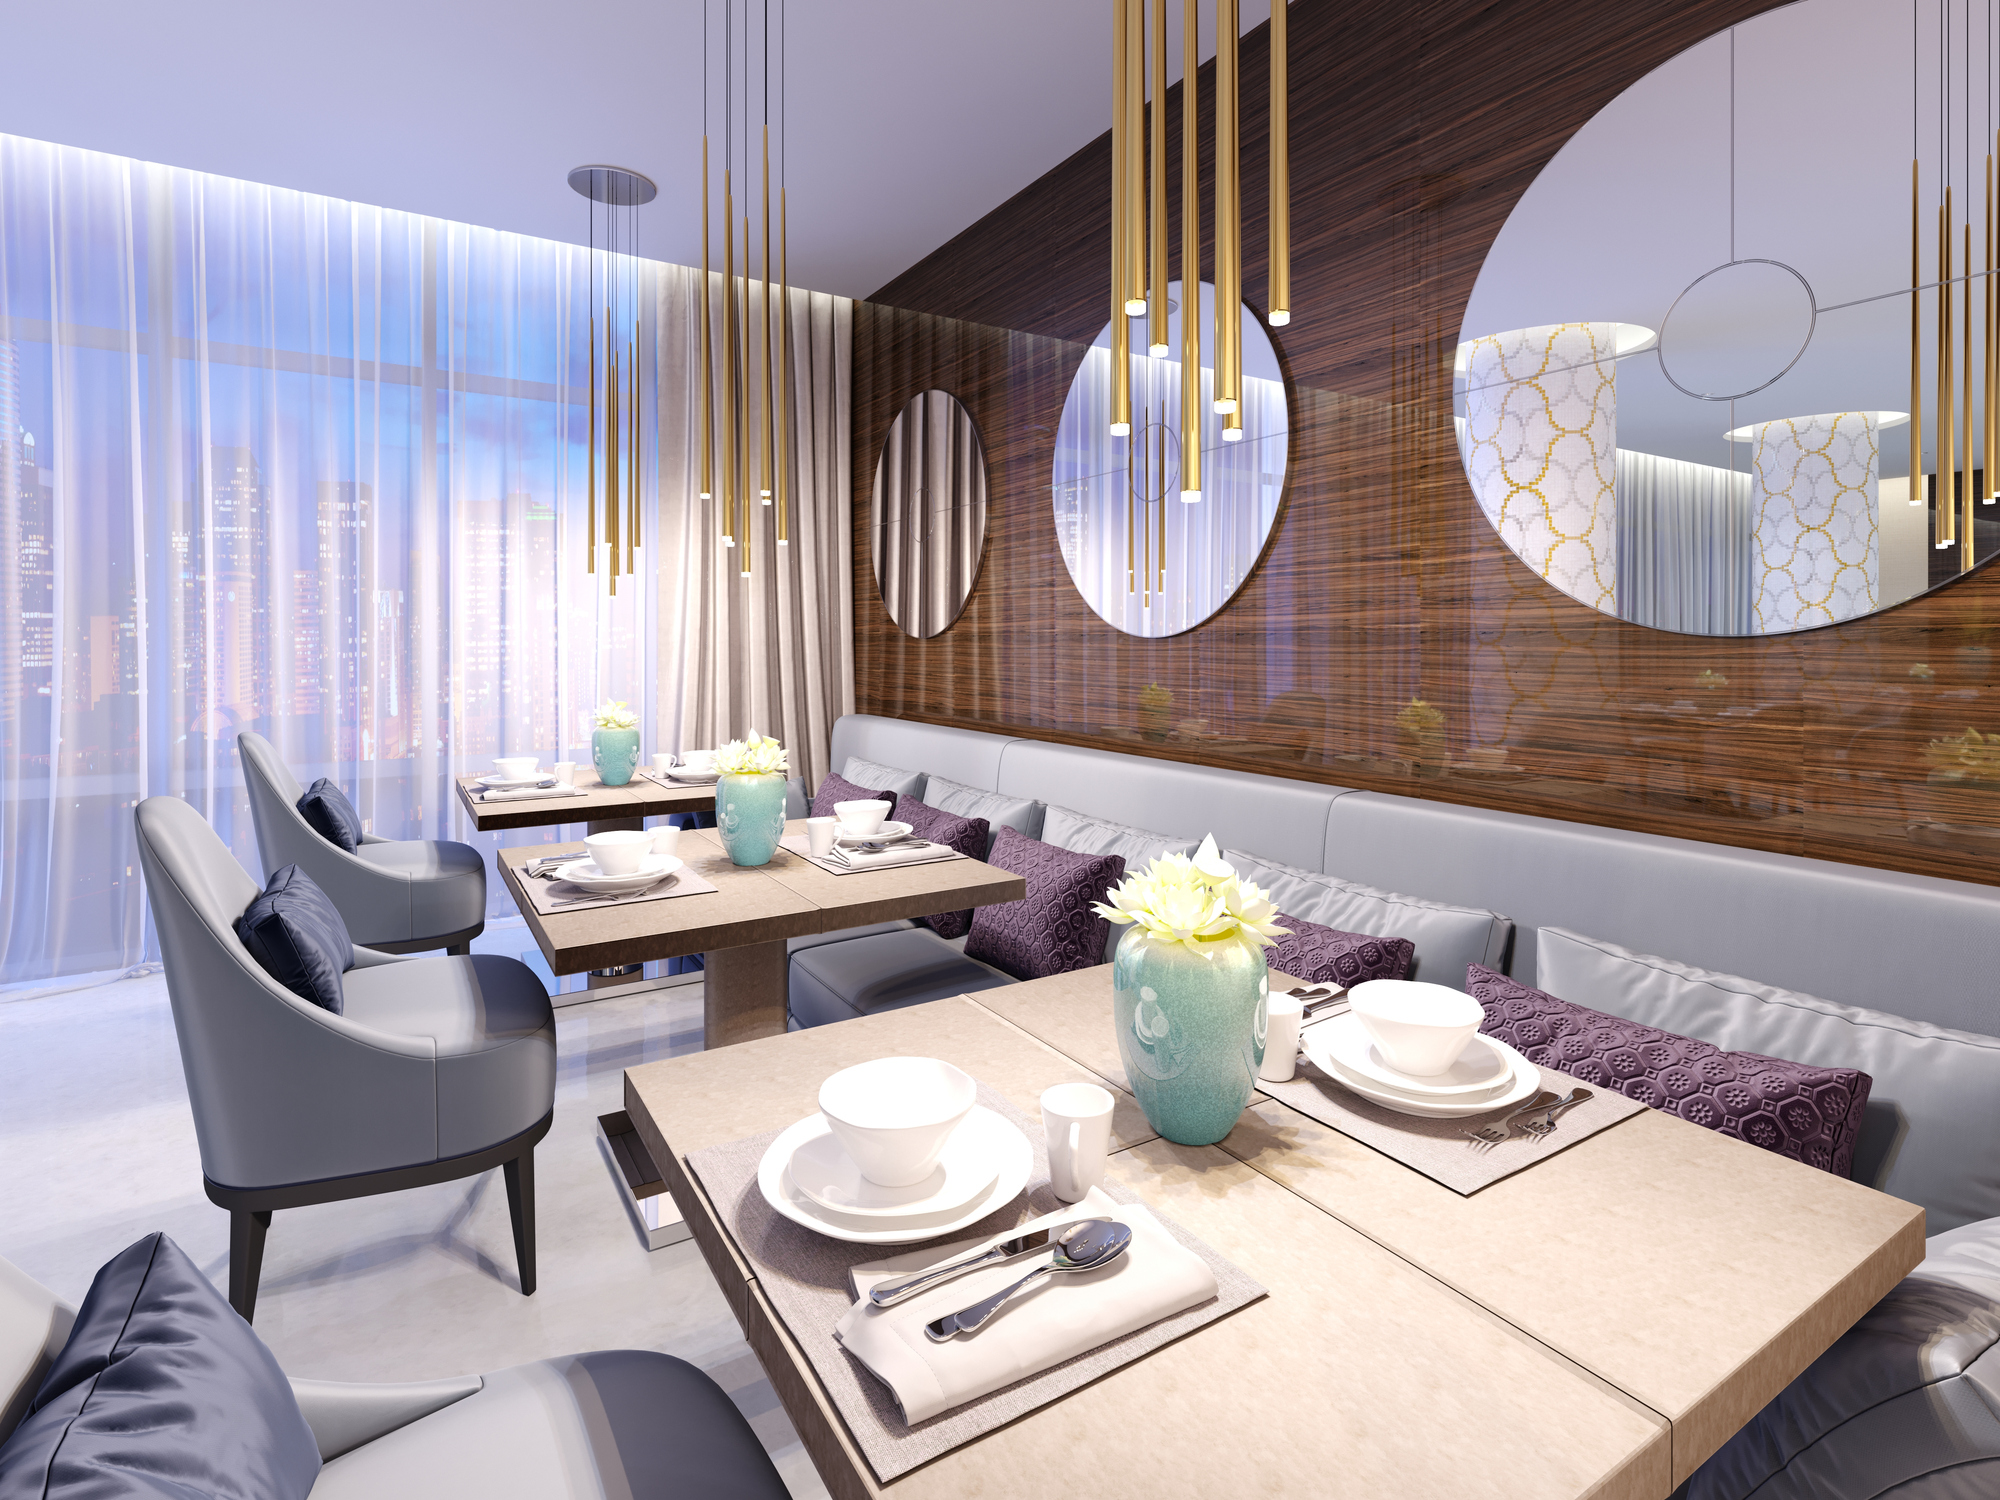 Modern restaurant with wooden decorative wall and round mirrors. Gold pendant lights. Purple sofa and chairs with tables. Served tables.